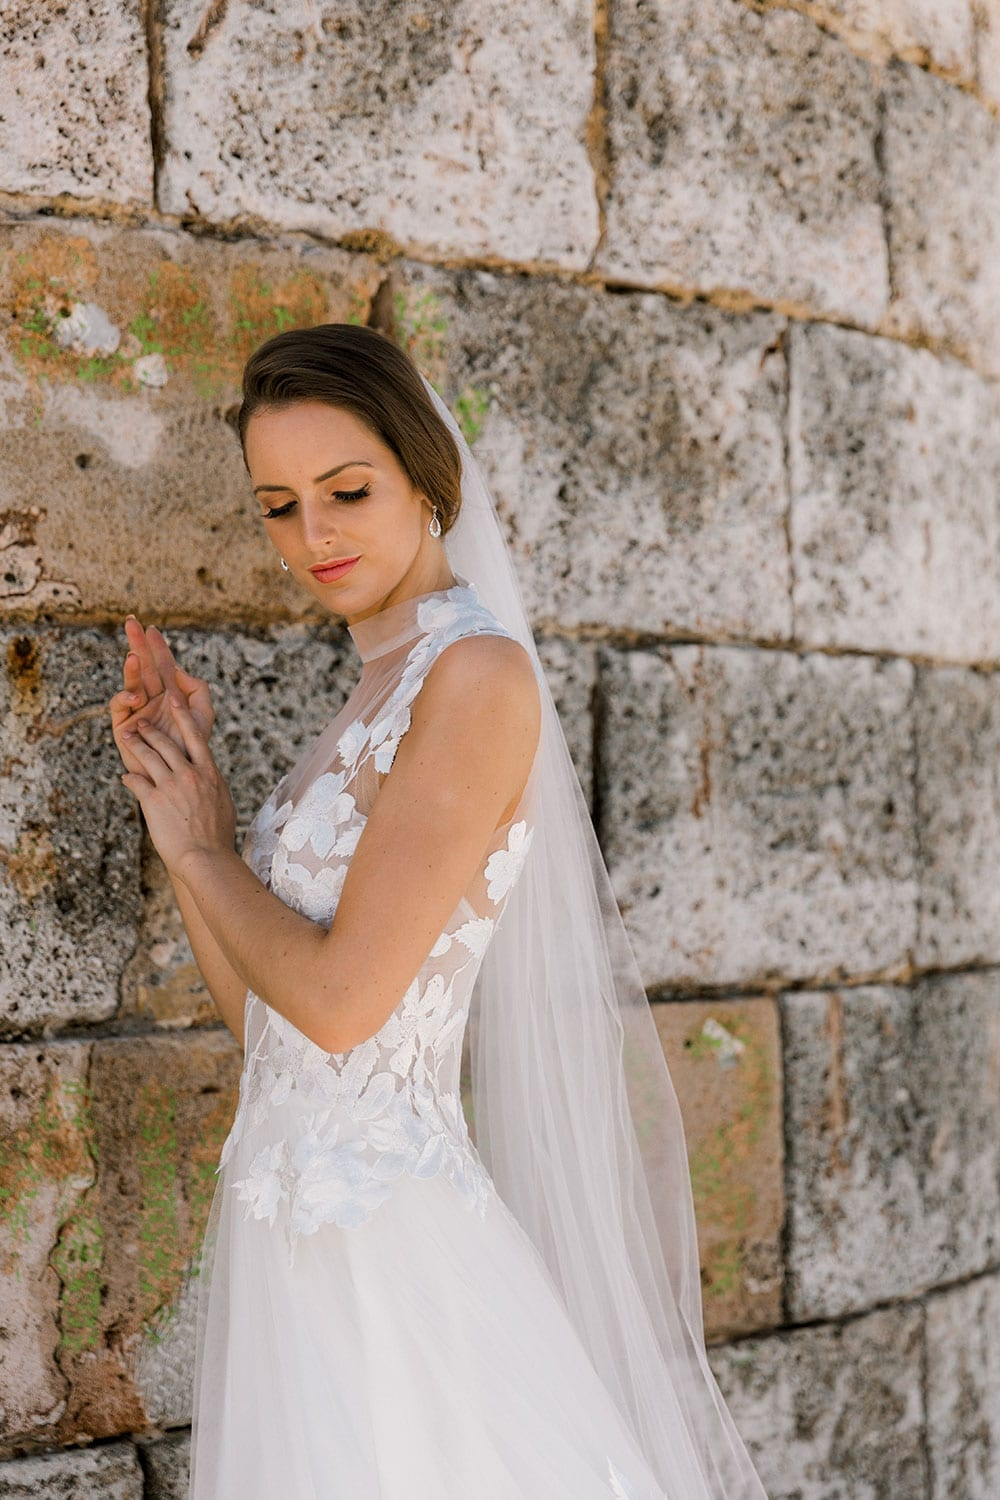 Model wearing Vinka Design Julia Wedding Dress, a High Neck Tulle Wedding Gown leaning into an old wall in Havana